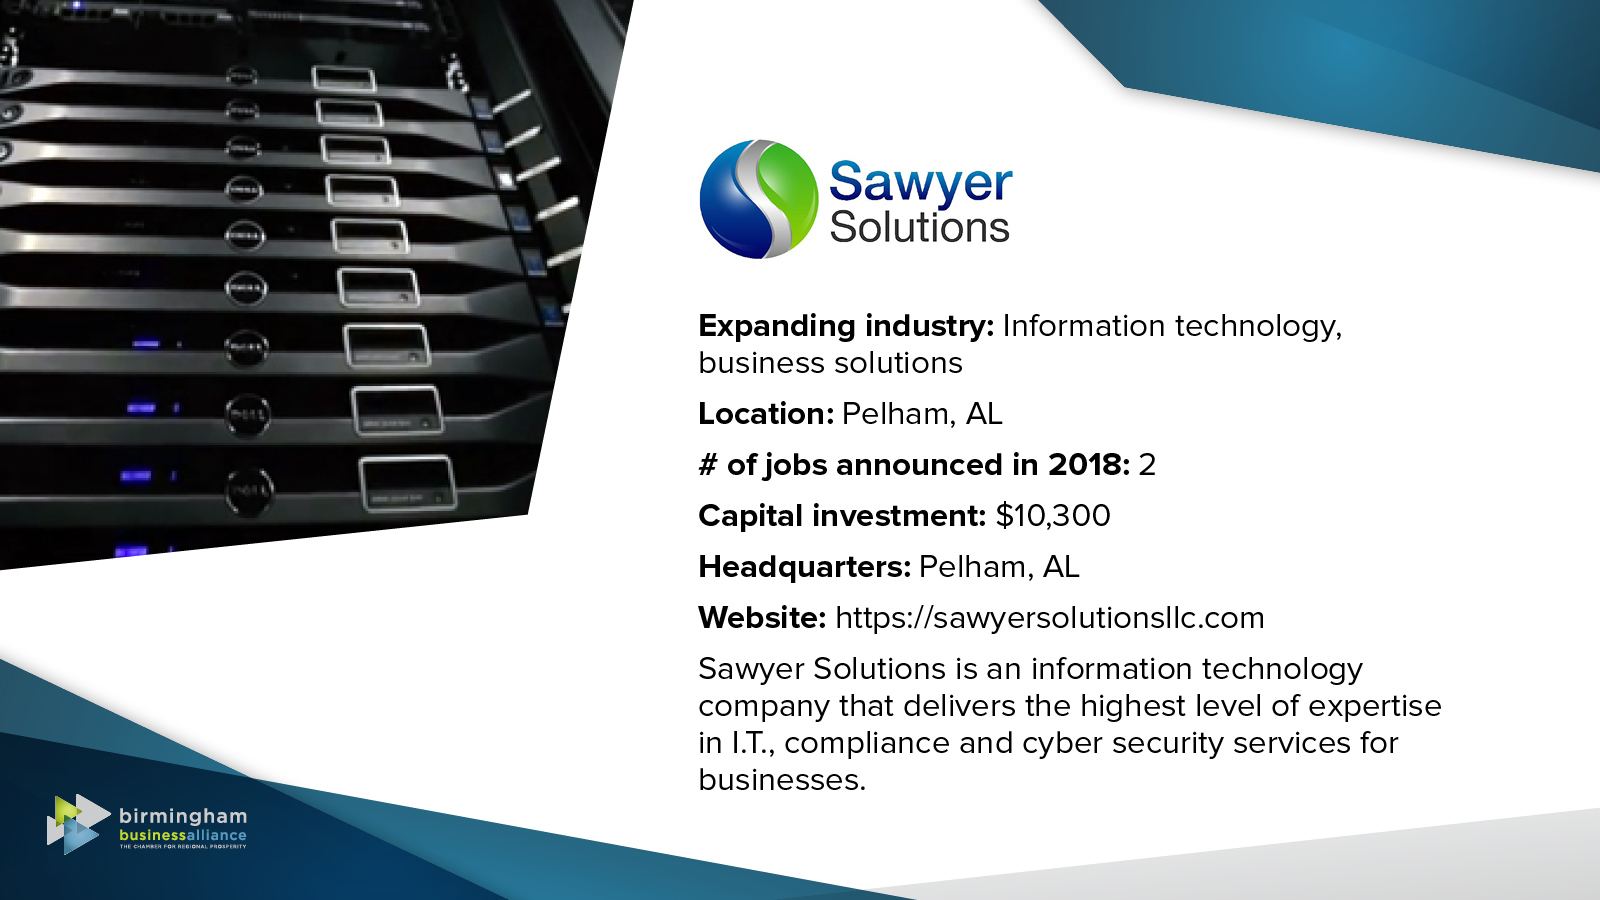 47) Sawyer Solutions